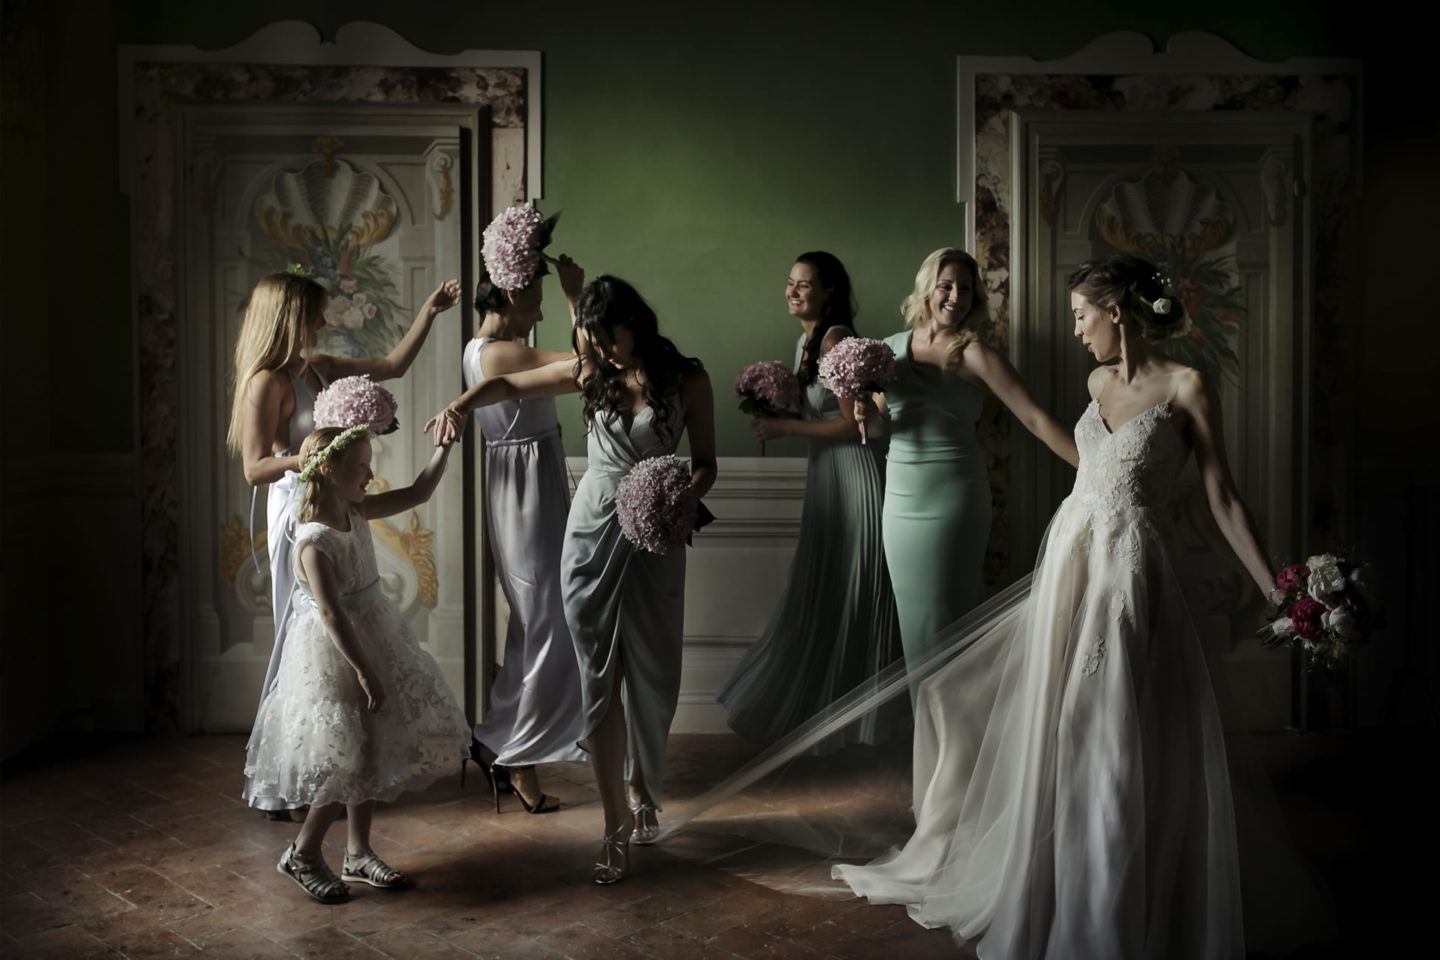 Unexpected :: Groups Bridal Parties :: David Bastianoni wedding photographer